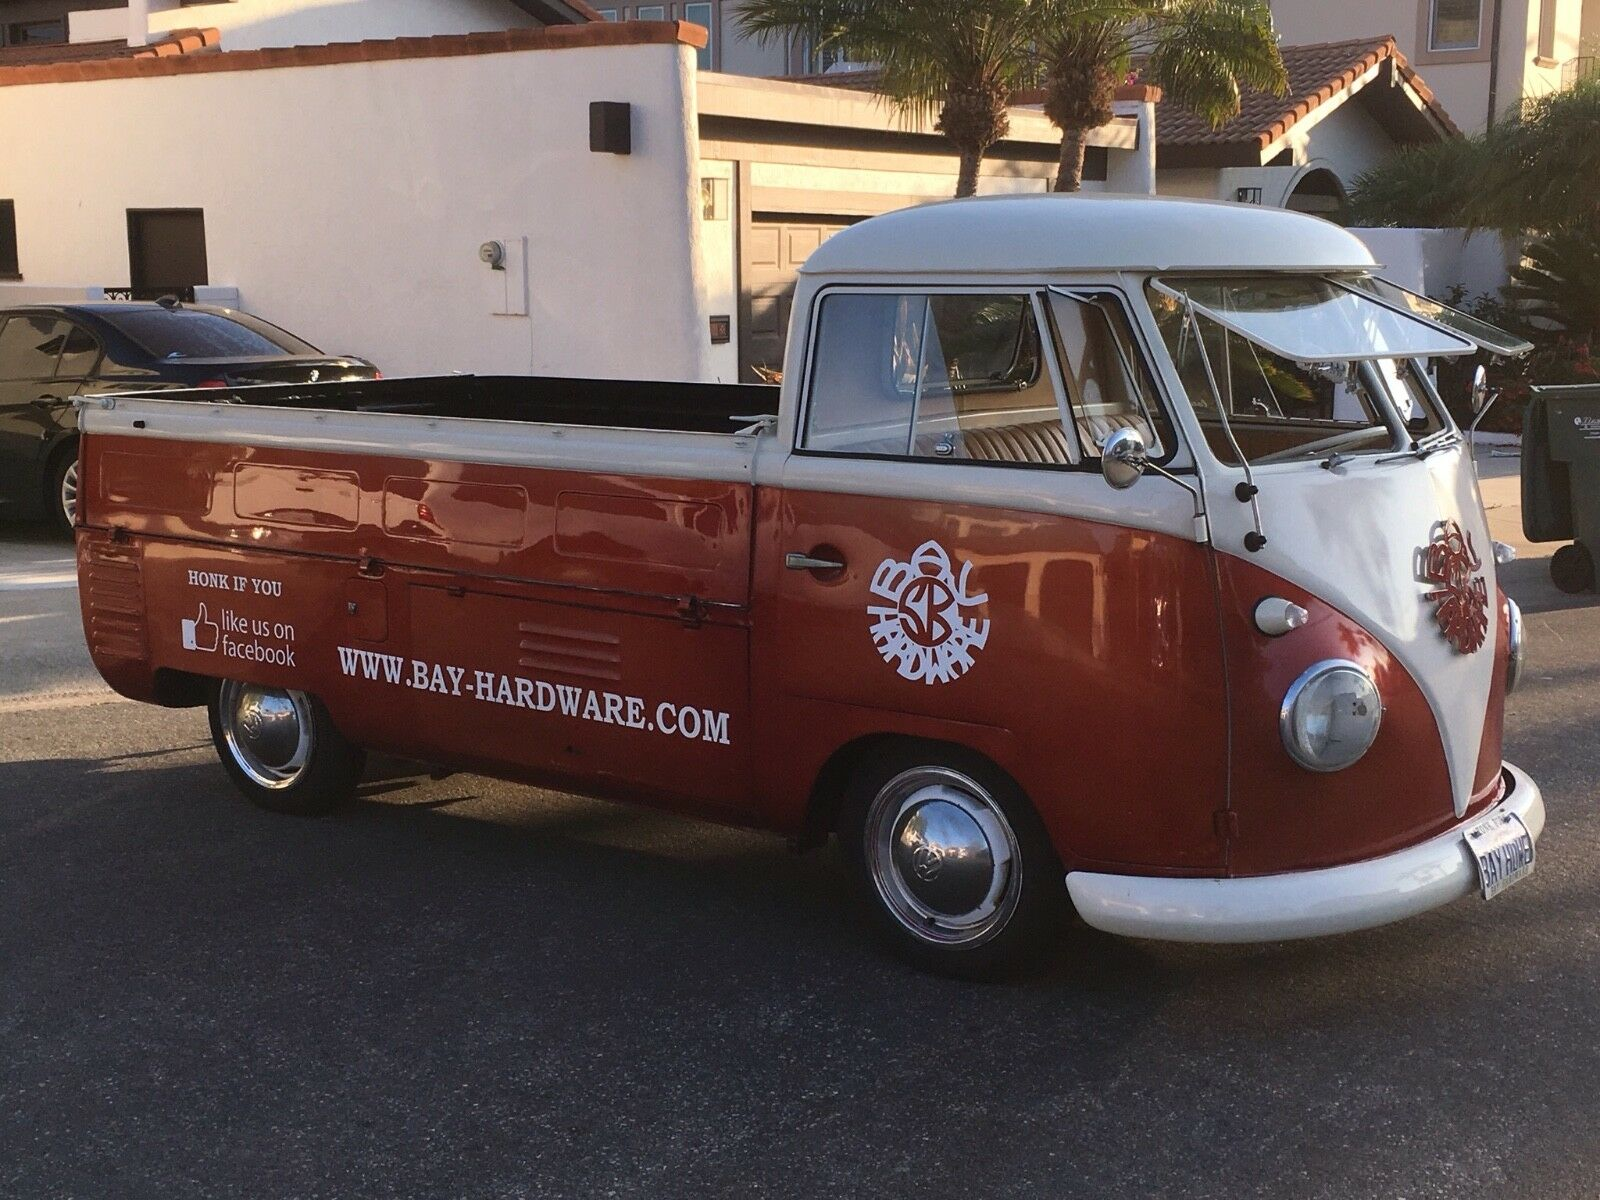 1960 Volkswagen Bus/Vanagon Single Cab 1960 VW Type II Single Cab - Safari Windows Front and Rear - So Cal & Oregon